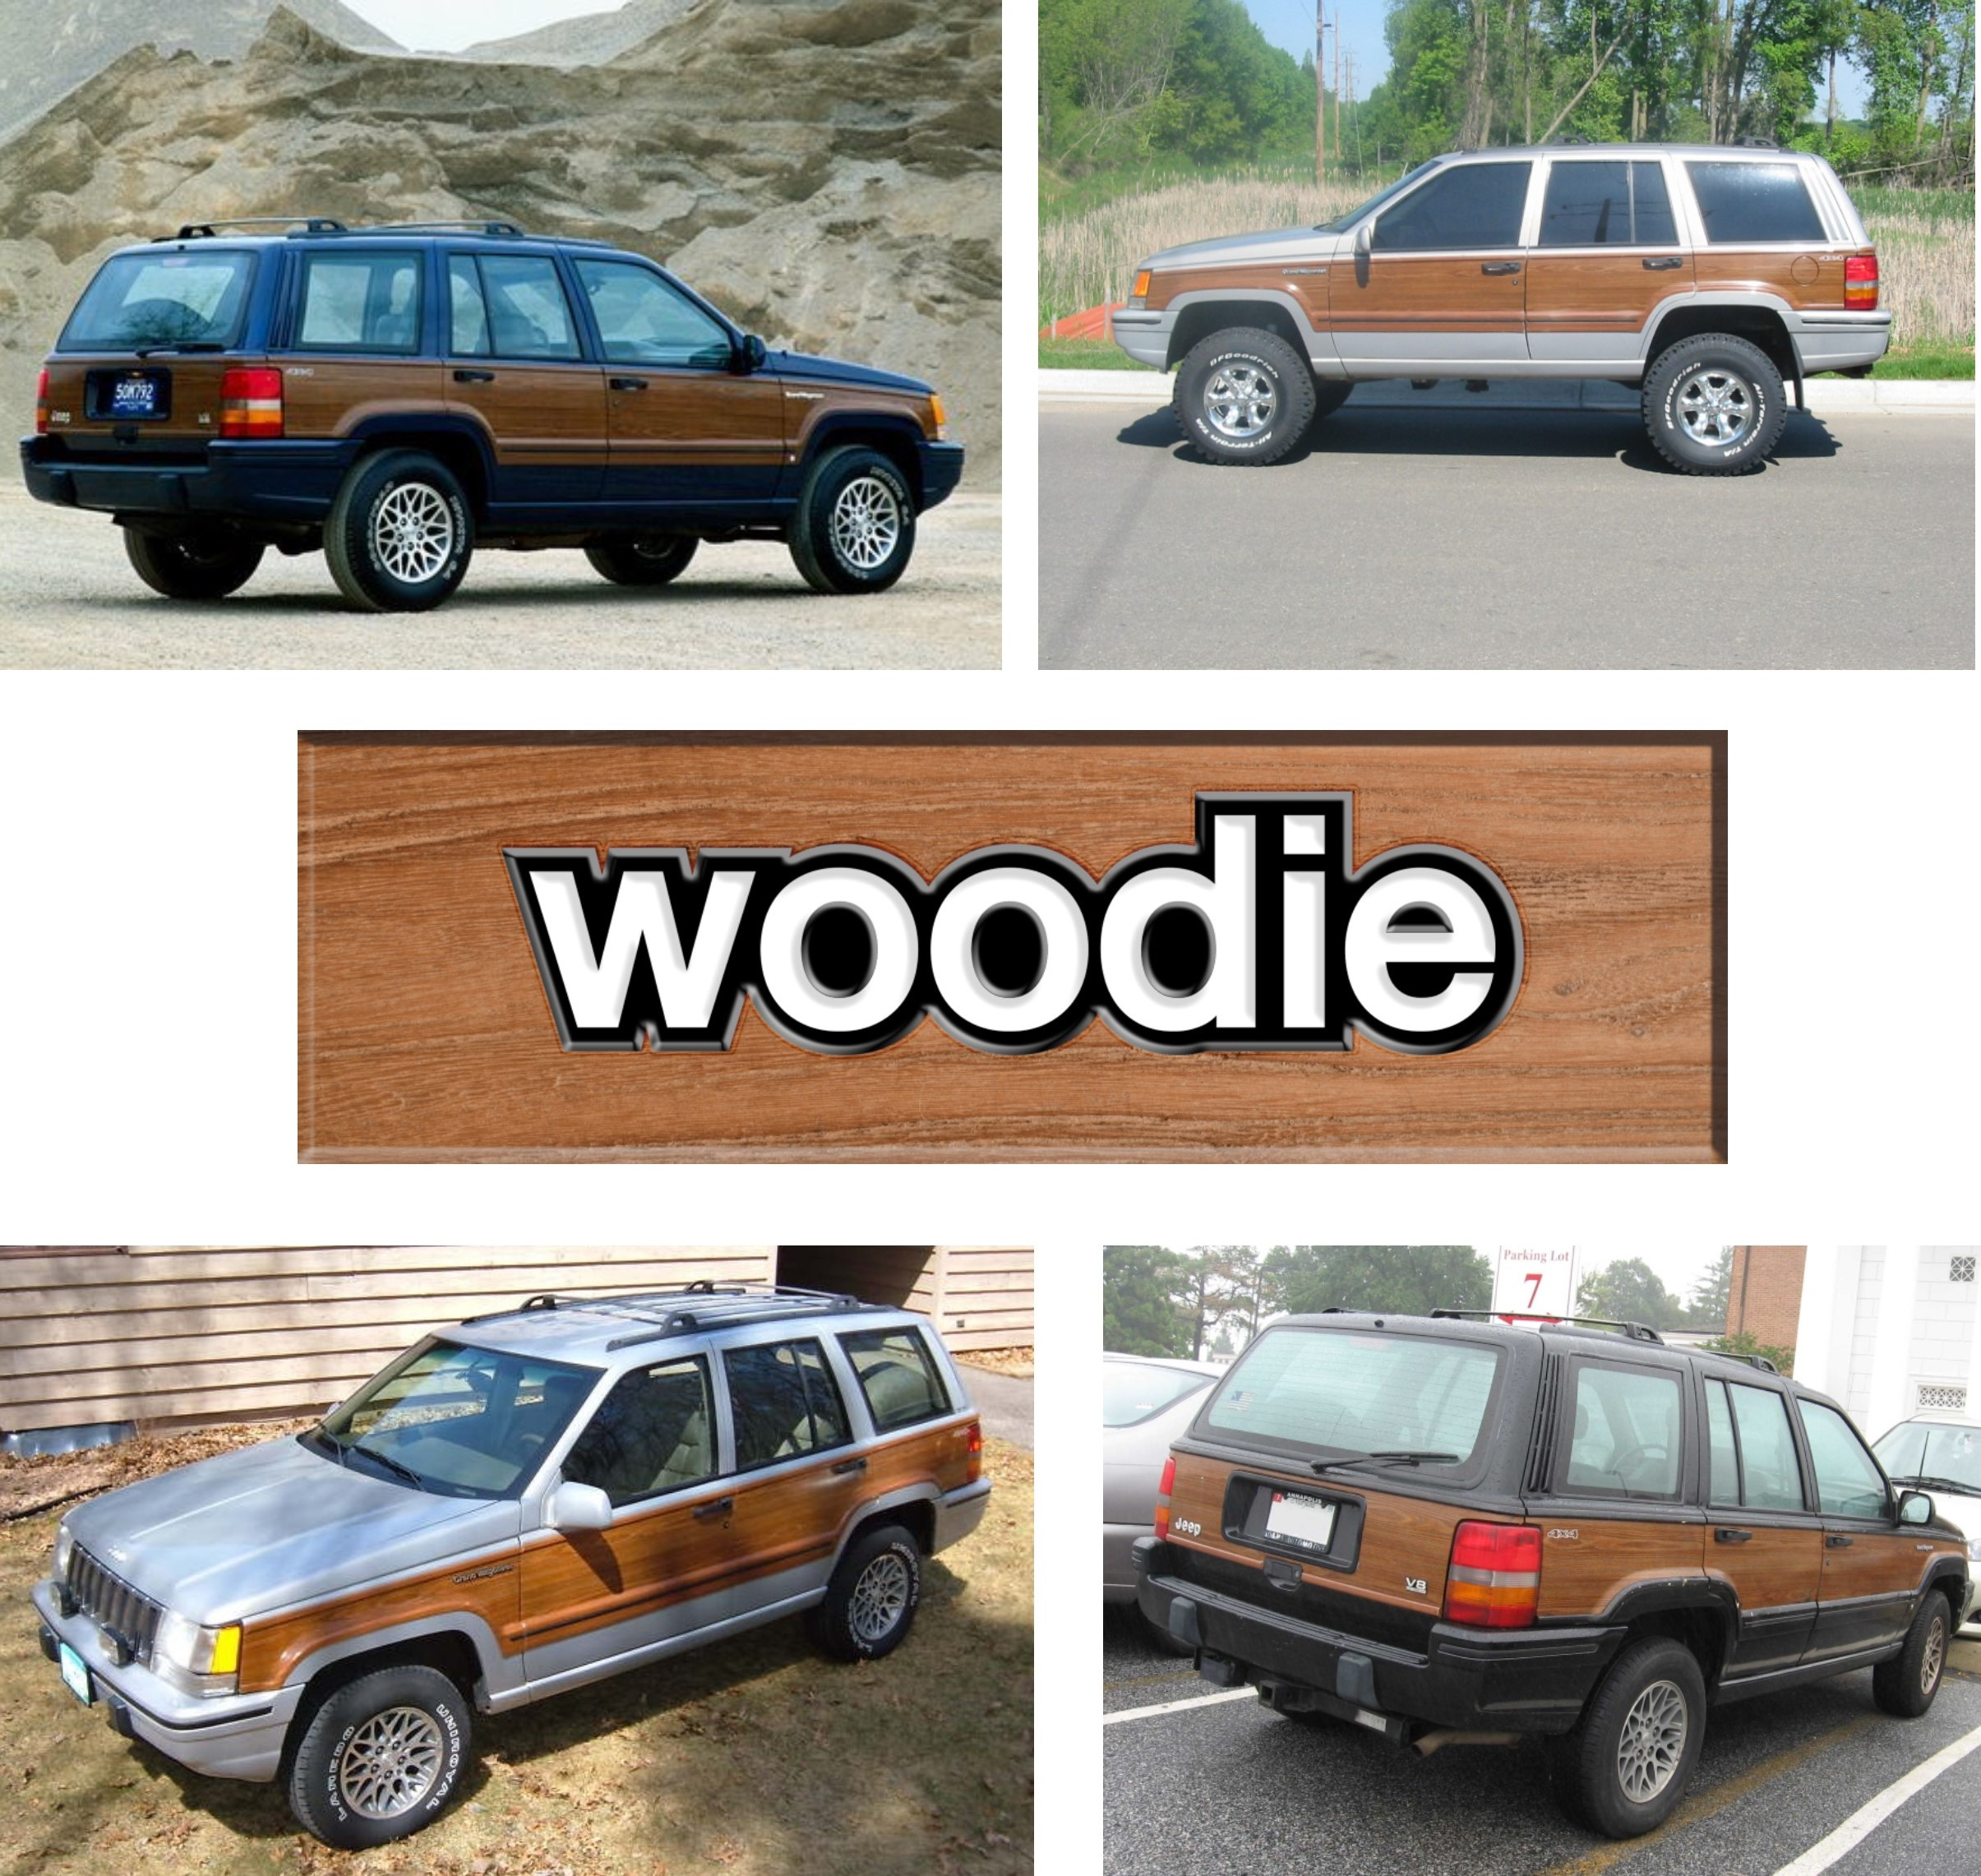 Jeep Grand Cherokee ZJ woodie. There were 1,251,473 Jeep Grand Cherokee ZJ's built. Of that, only 6378 were Grand Wagoneers. The 1993 Woodies with 3M-DI-NOC-Marine-Teak-Wood-Vinyl wood grain are as rare as hens teeth. Expect to see Retromod versions popping up for sale soon. They represent only half a percent or 0.5% of the total production.